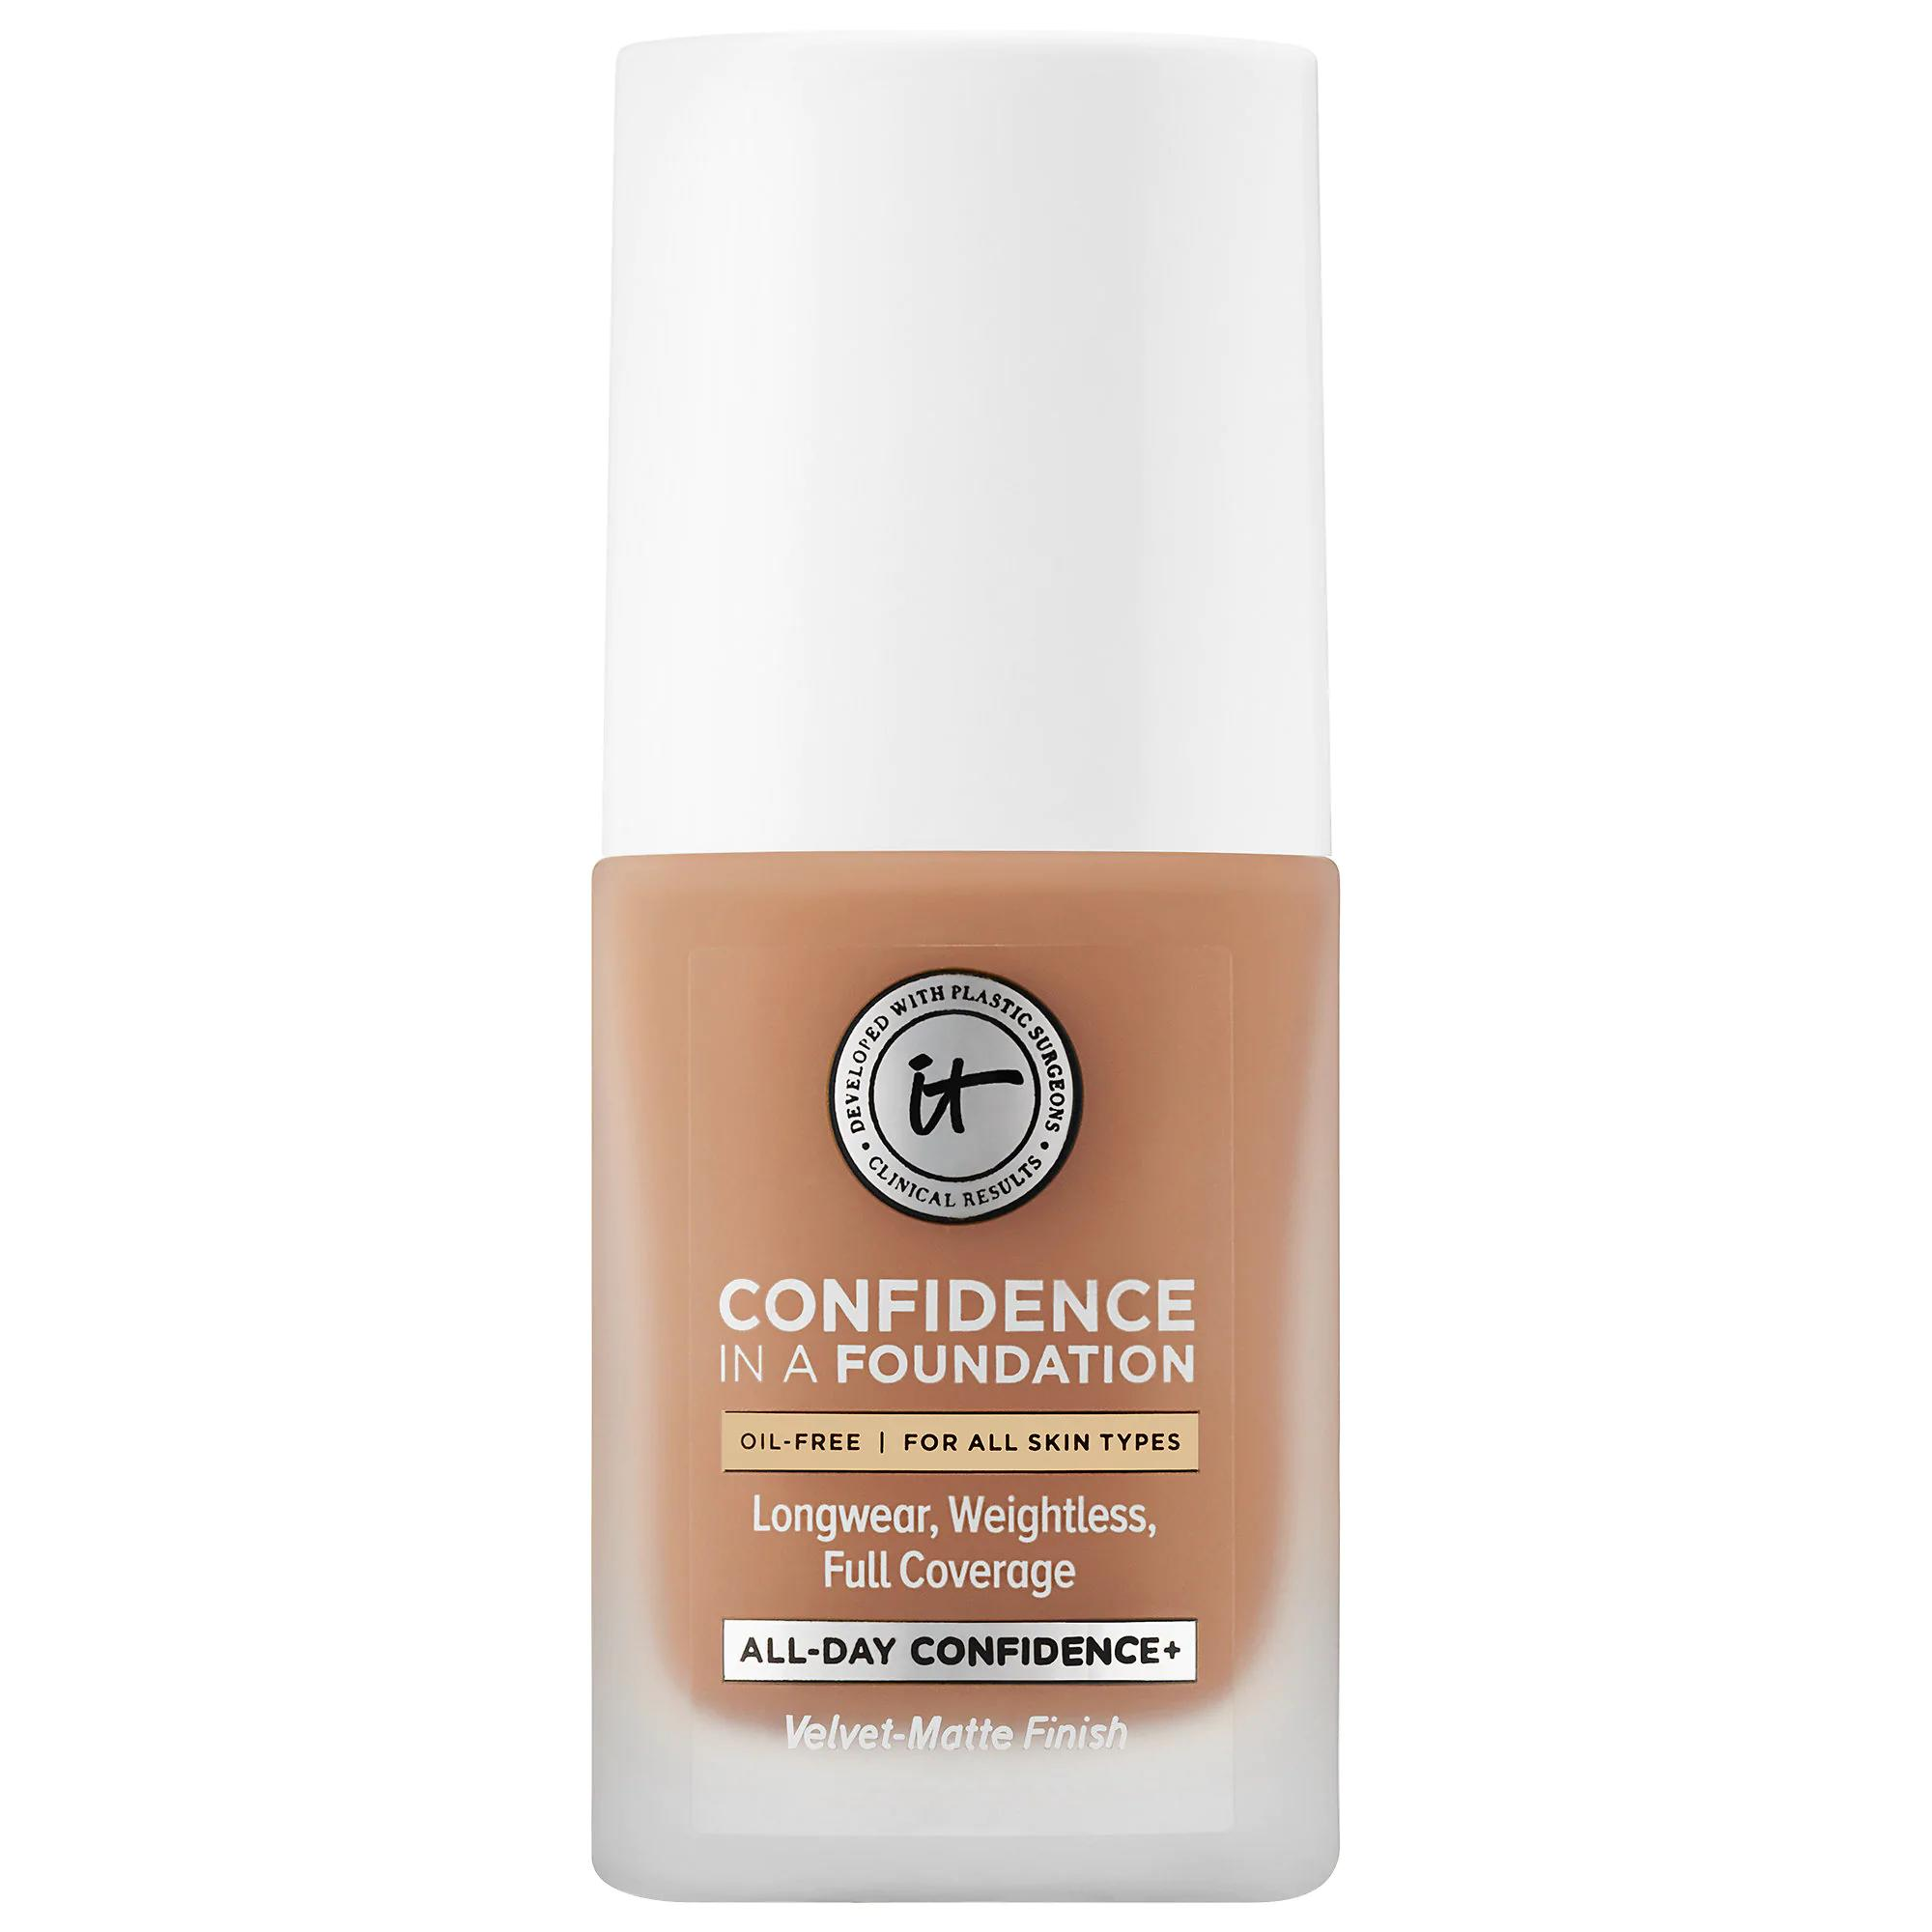 IT Cosmetics Confidence in a Foundation Tan Natural 330